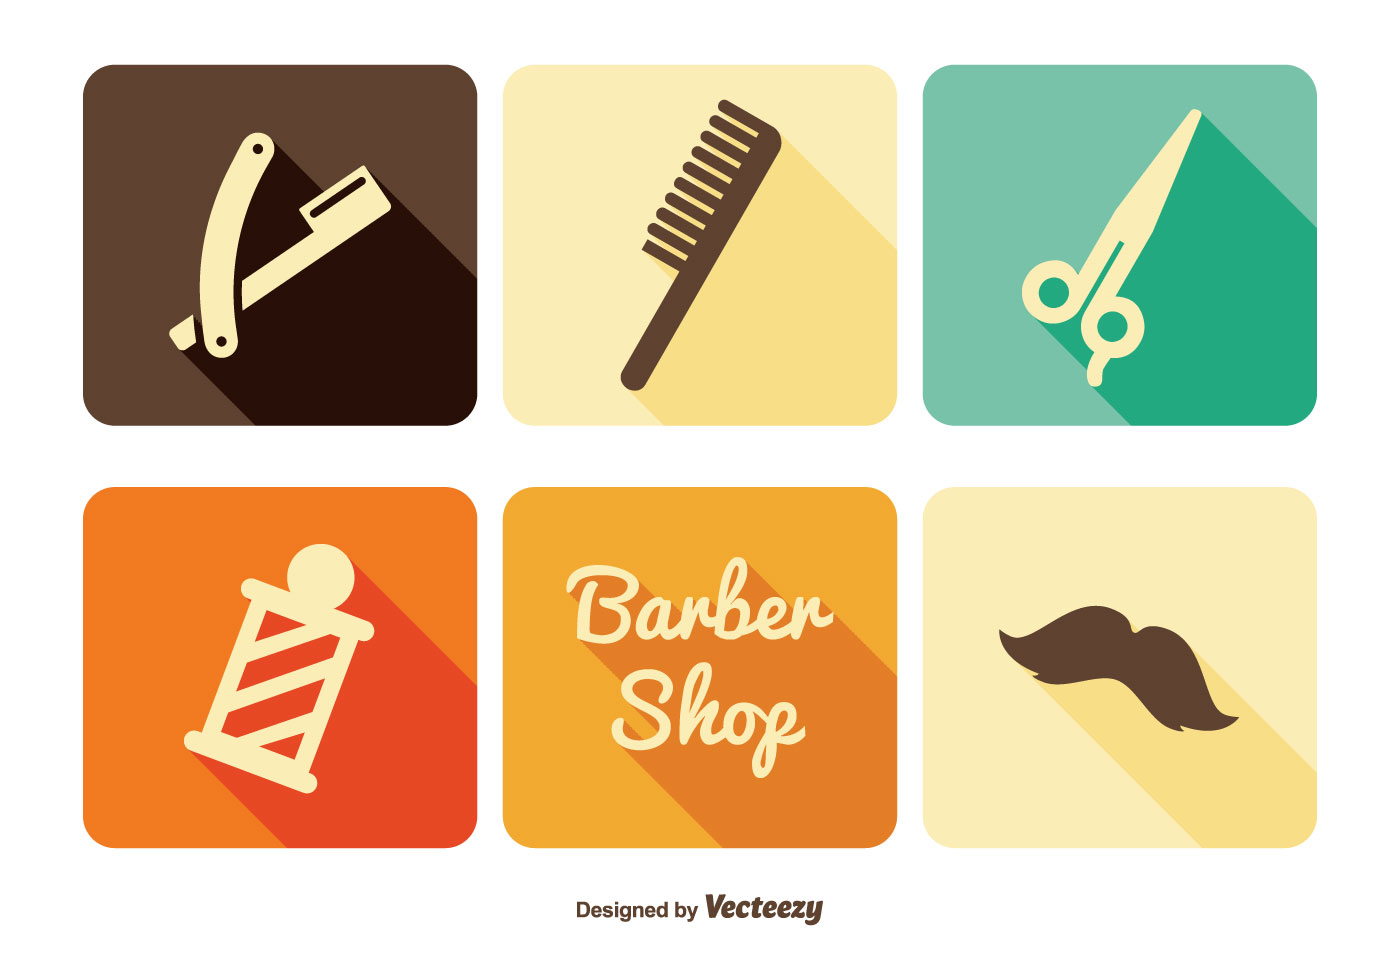 Barber Shop Icon Set Download Free Vector Art Stock